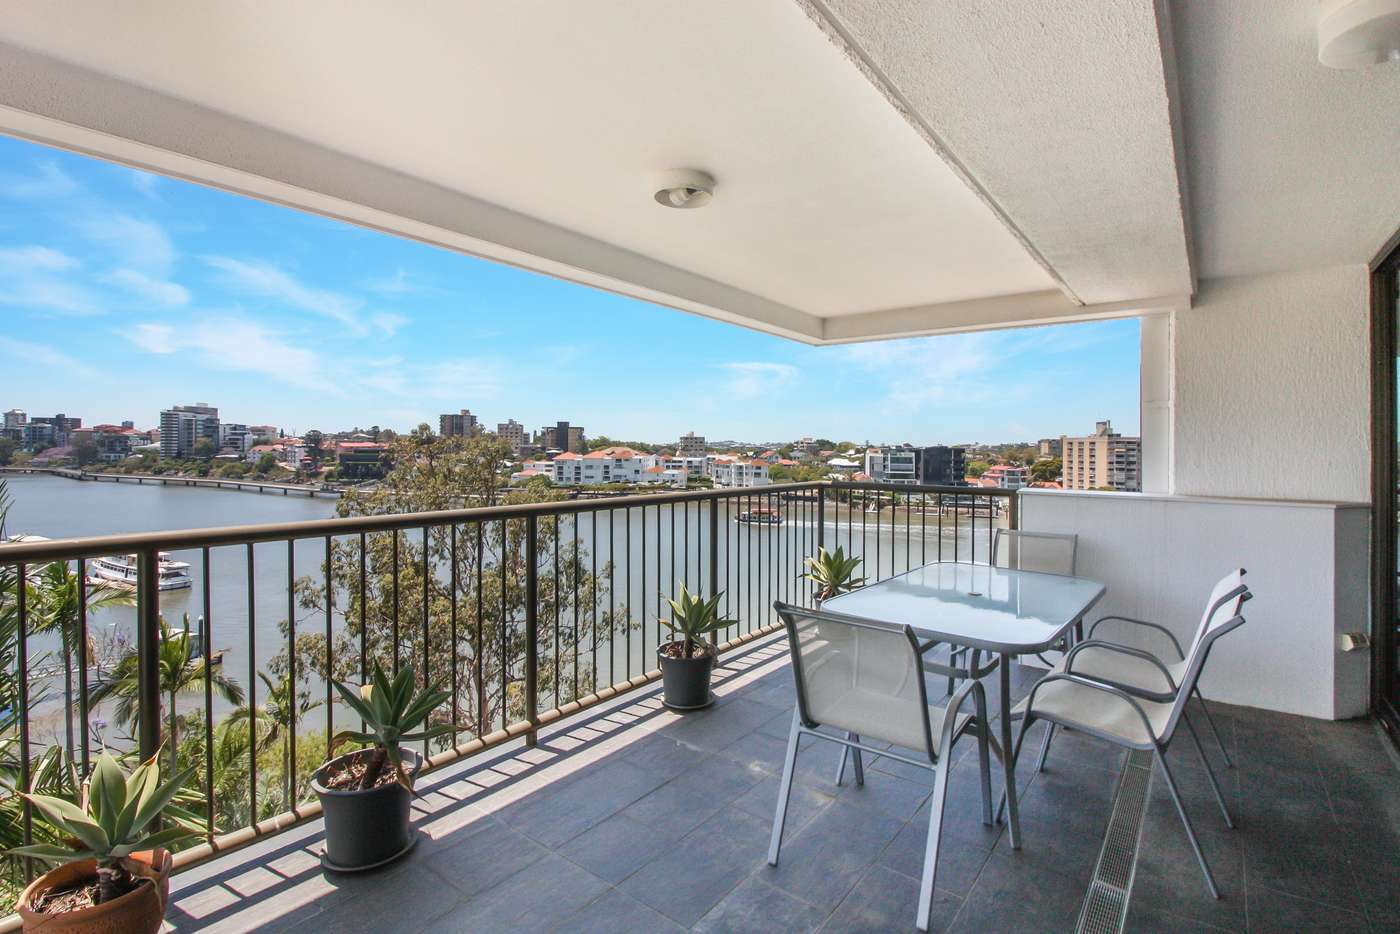 Main view of Homely apartment listing, 10/77 Cairns St, Kangaroo Point QLD 4169